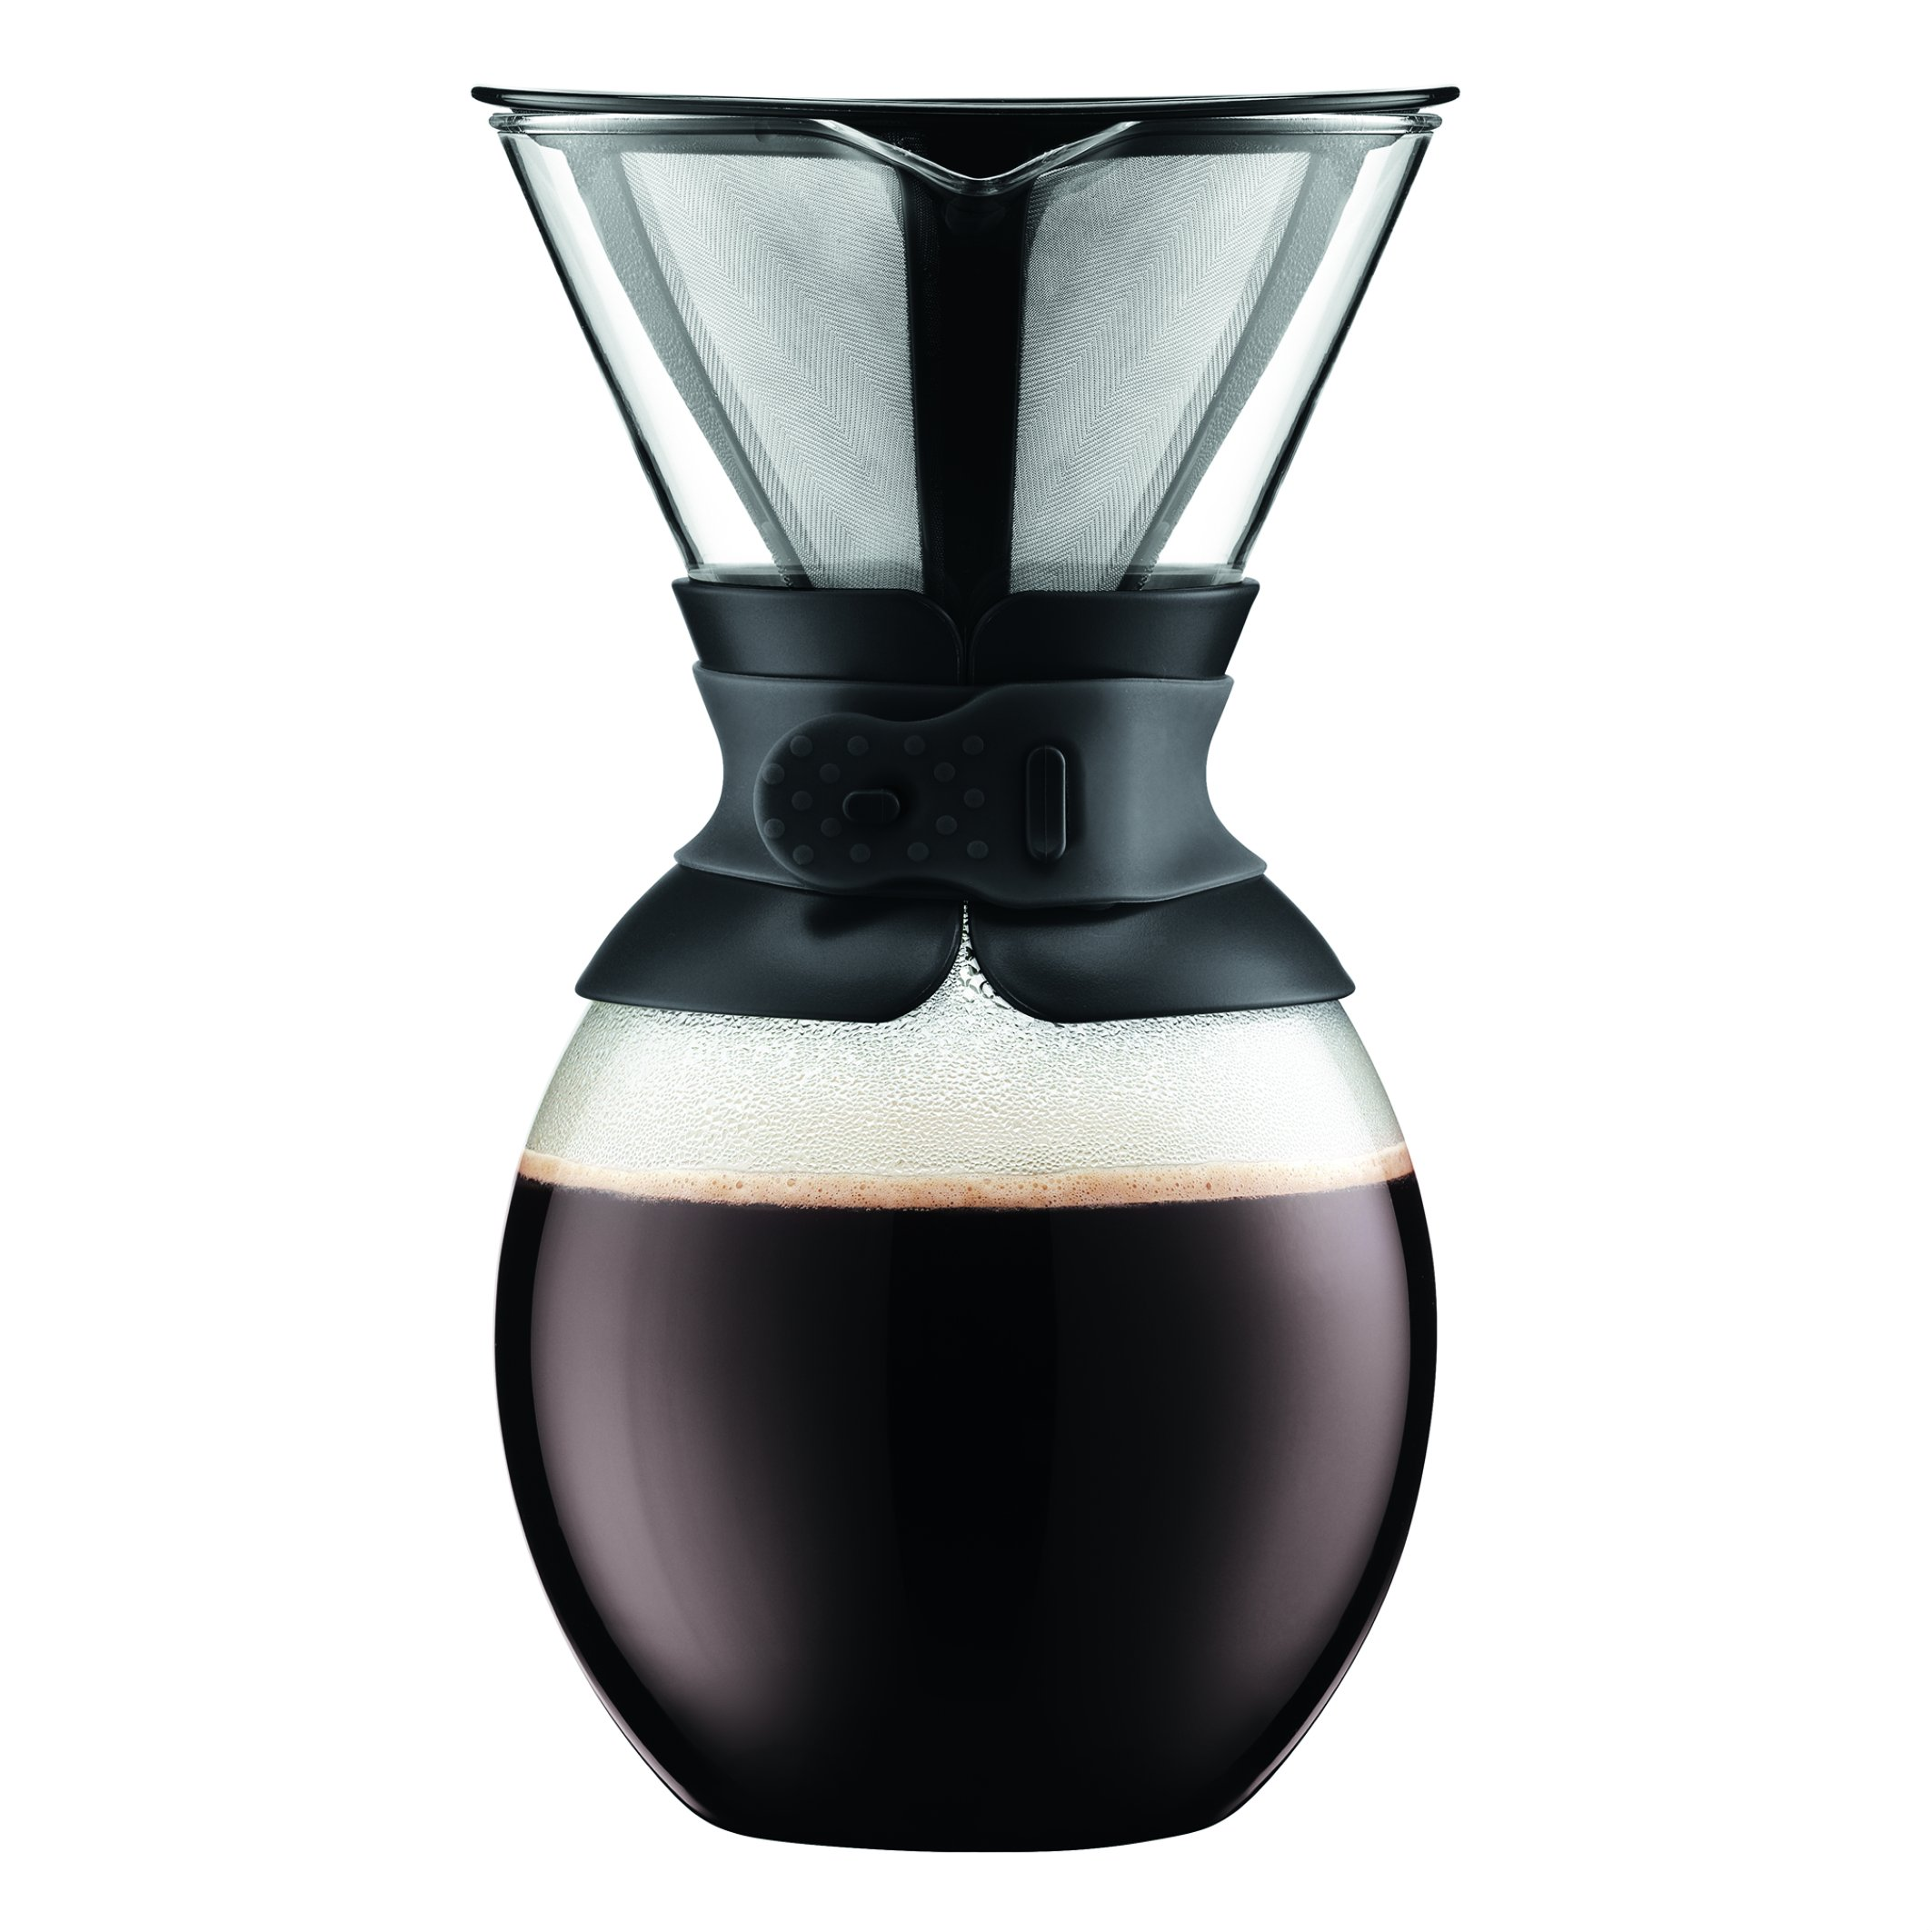 Bodum Pour Over Coffee Maker with Permanent Filter, 51 Ounce, 1.5 Liter, Black Band